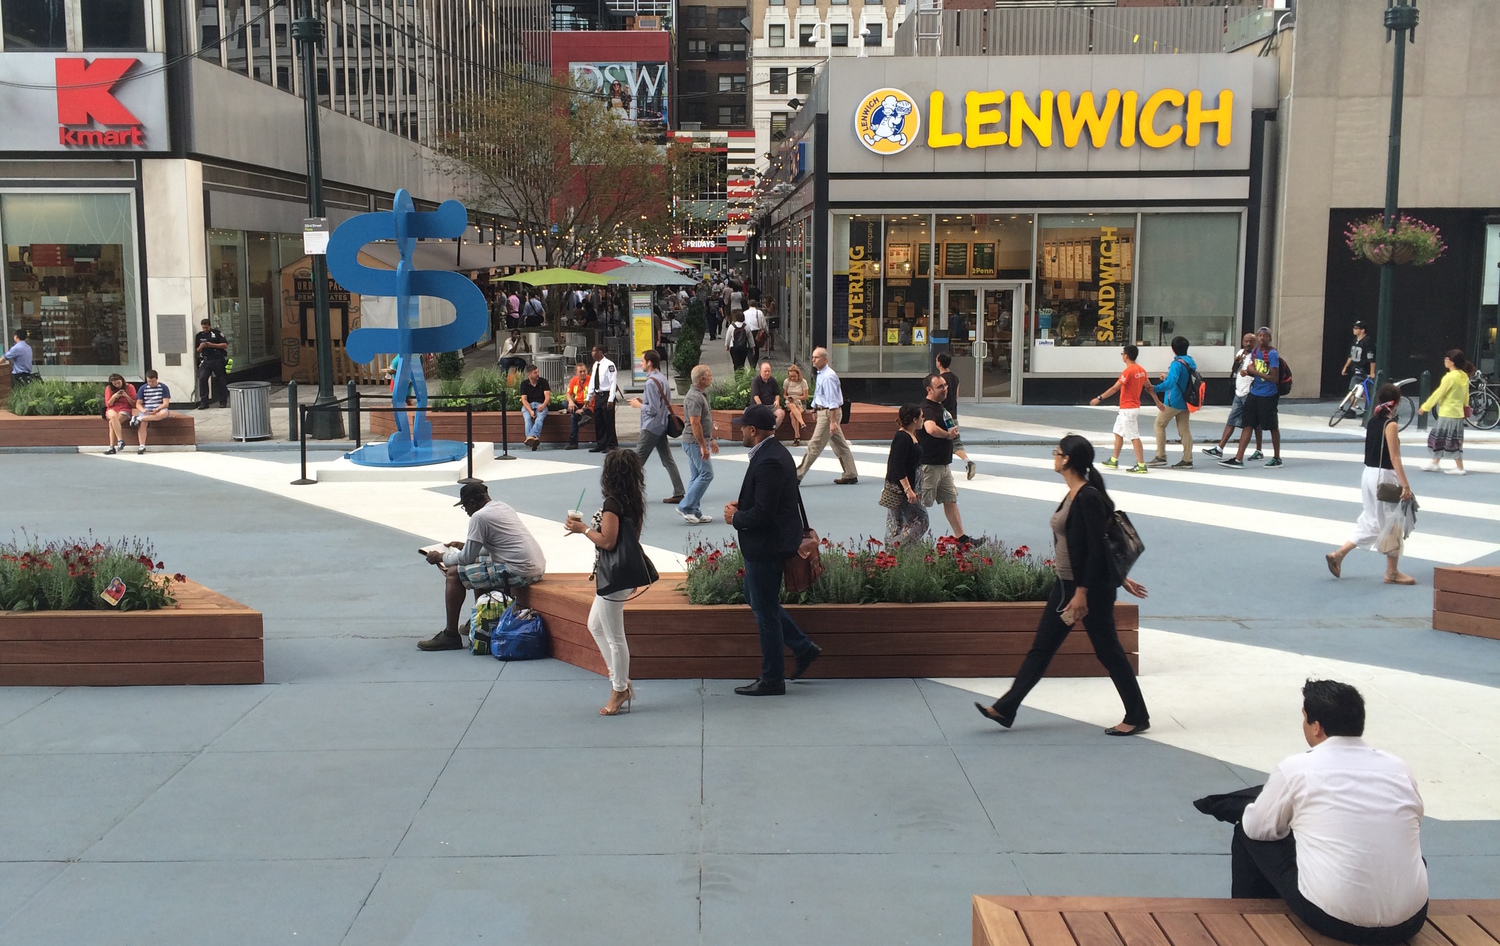 Rush hour outside Penn Station. Photo: Stephen Miller